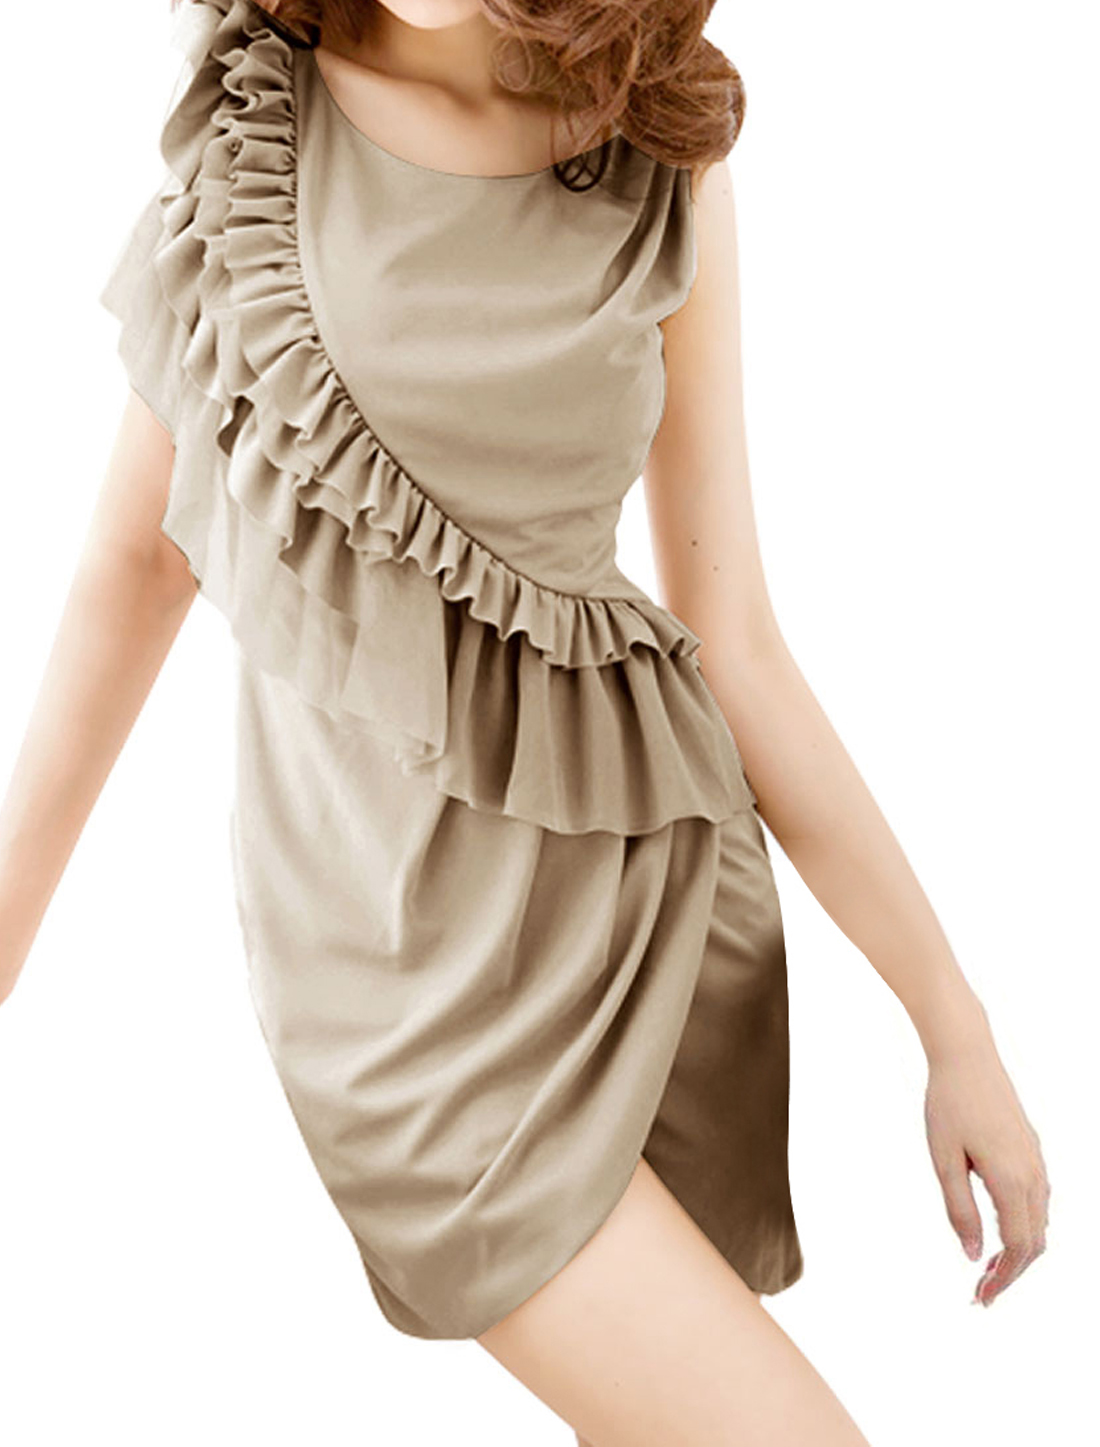 Light Gray Summer Ruffled Detail Lining Cocktail Party Mini Dress for Ladies XS